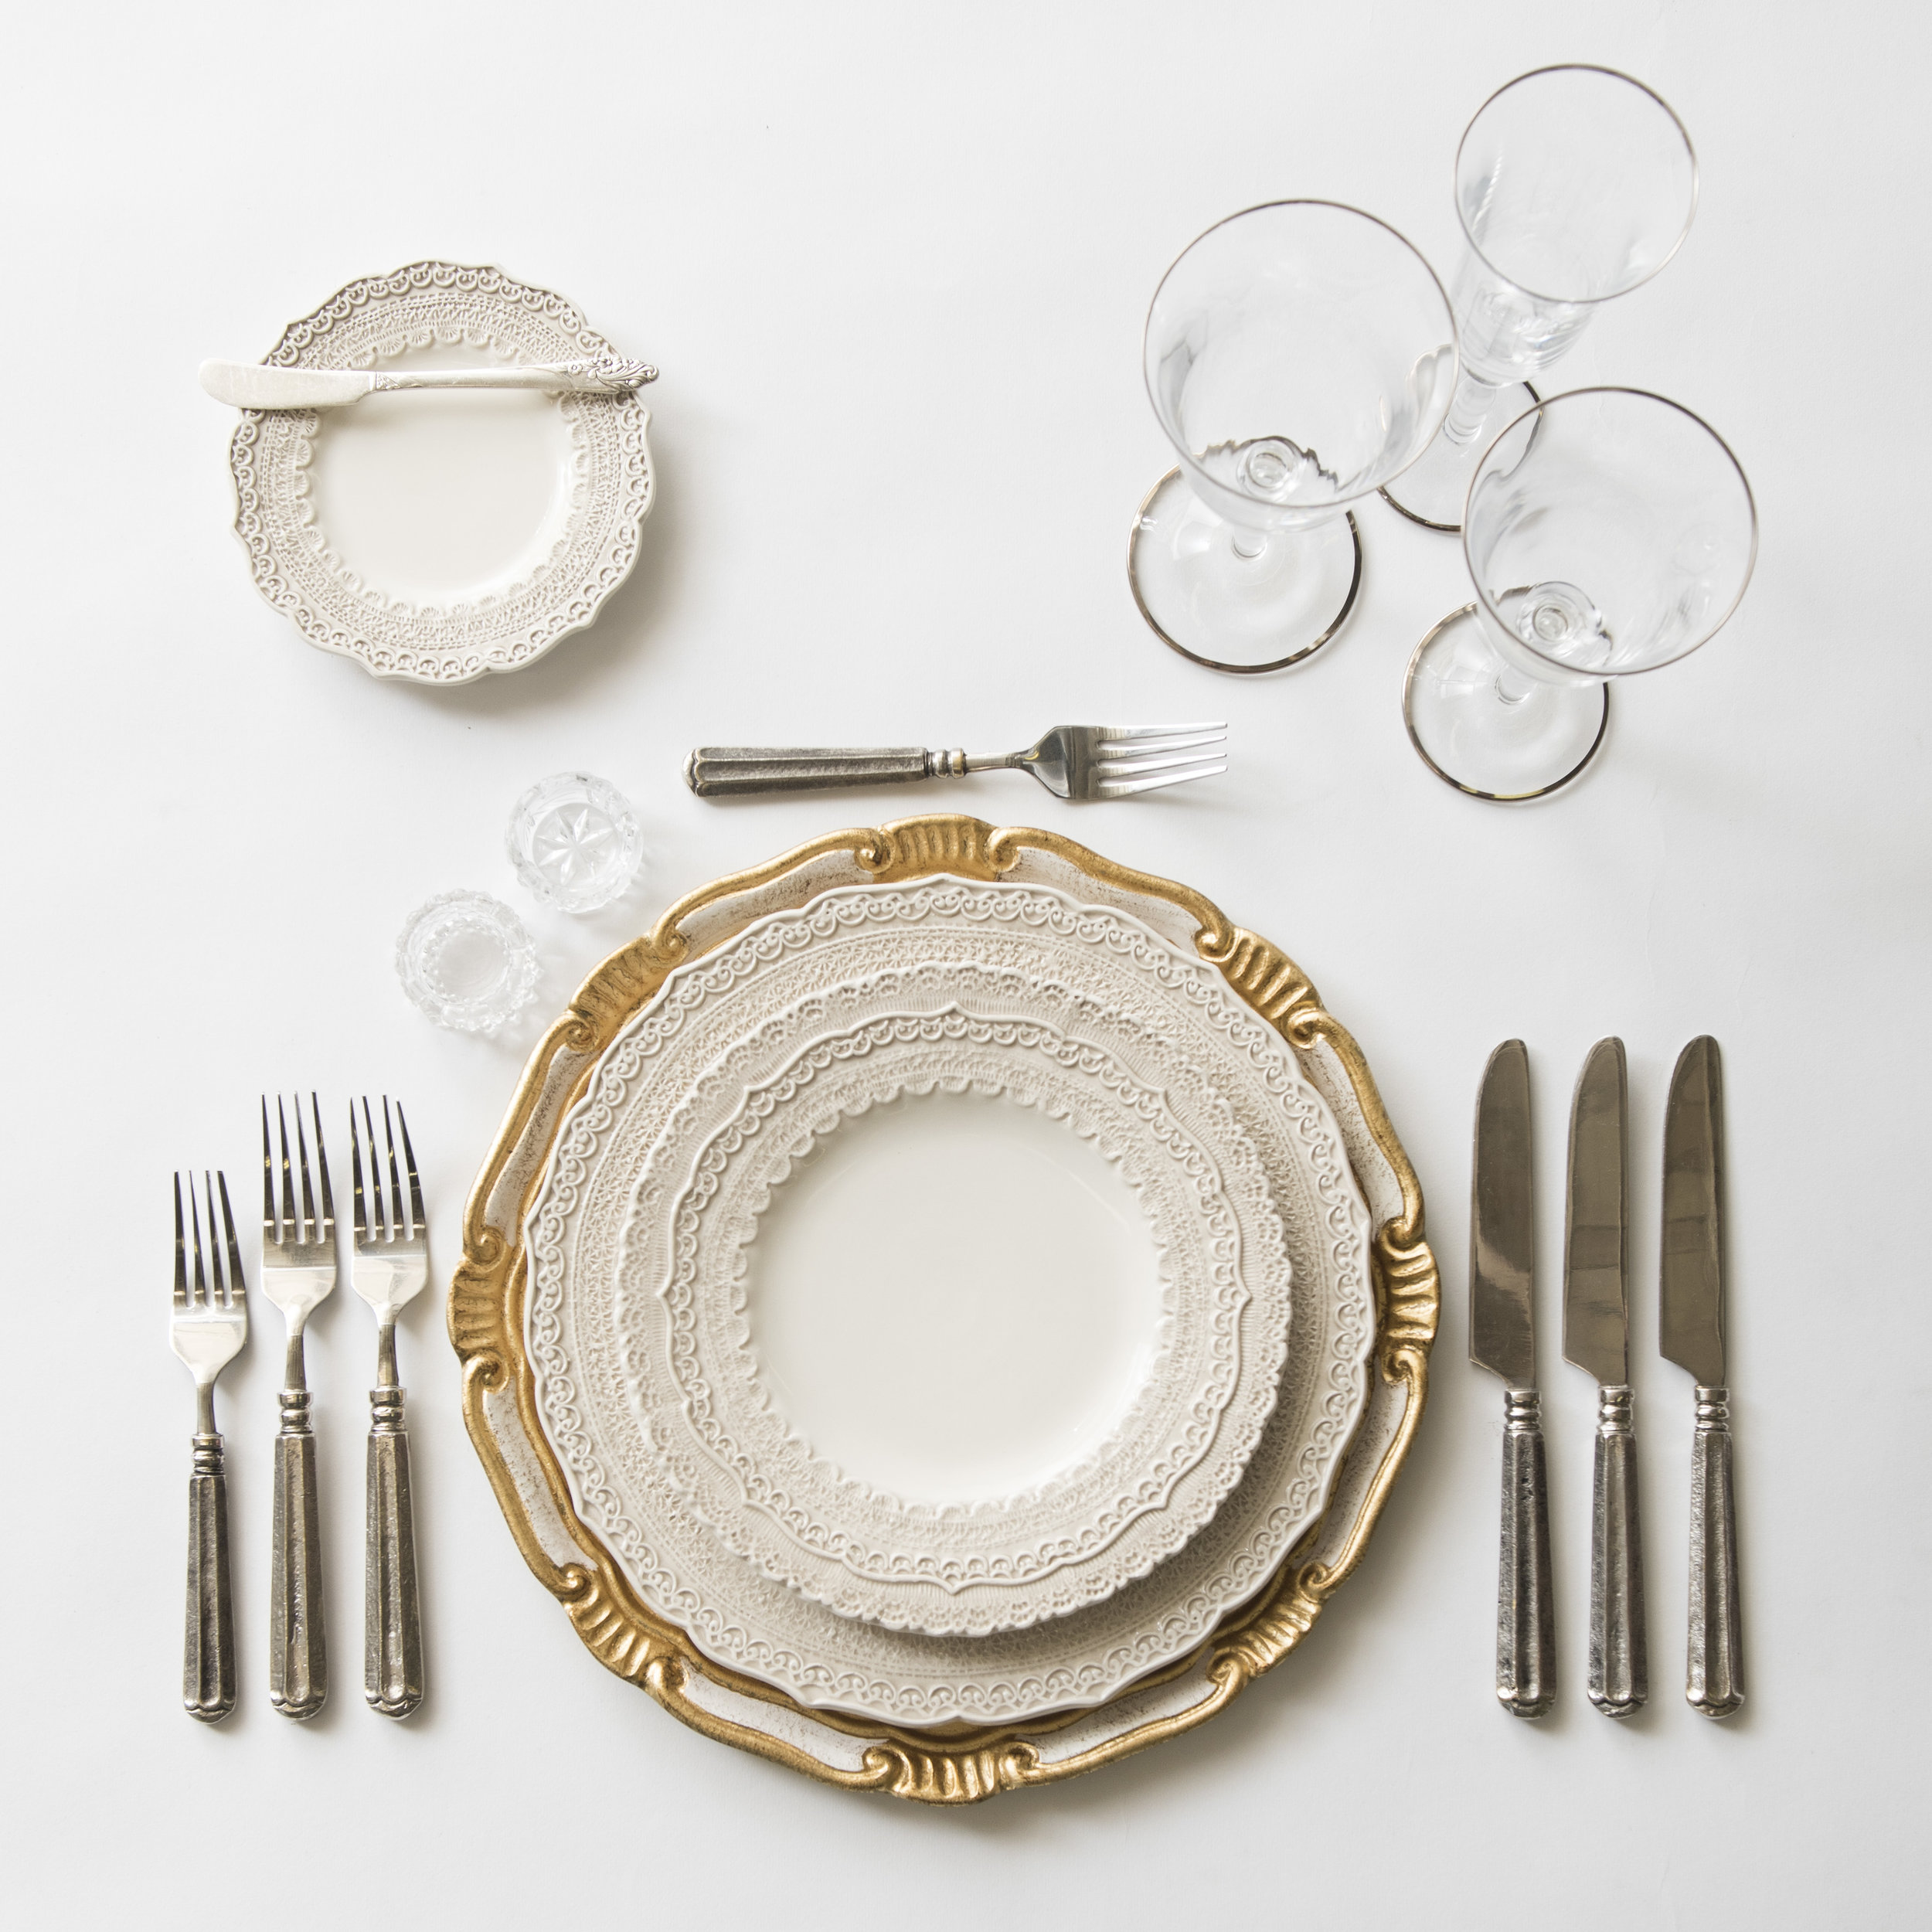 RENT: Florentine Chargers in White/Gold + Lace Dinnerware in White + Tuscan Flatware in Pewter + Chloe Platinum Rimmed Stemware + Antique Crystal Salt Cellars  SHOP:Florentine Chargers in White/Gold + Chloe Platinum Rimmed Stemware